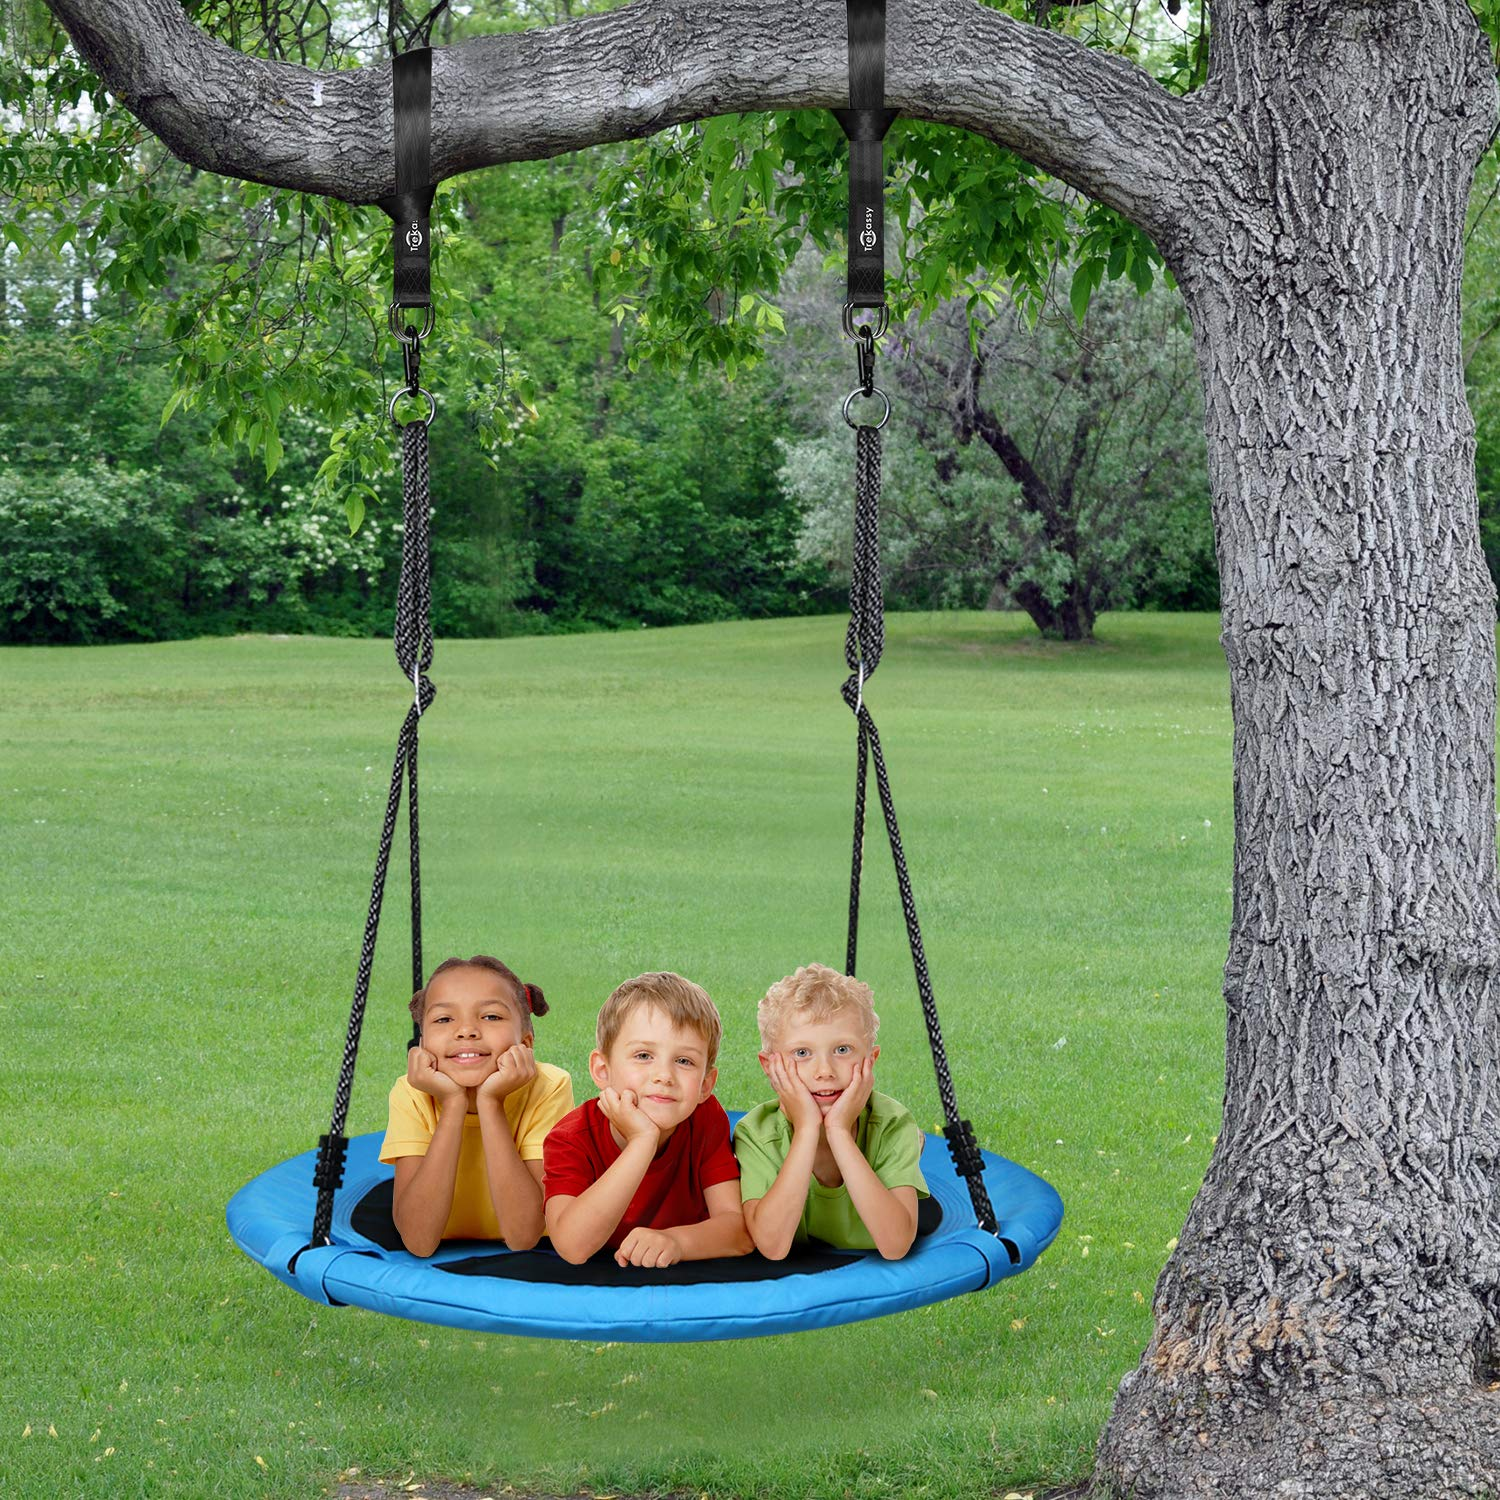 Trekassy 700lb Saucer Tree Swing for Kids Adults 40 Inch 900D Oxford Waterproof Frame with 2 Hanging Straps by Trekassy (Image #7)